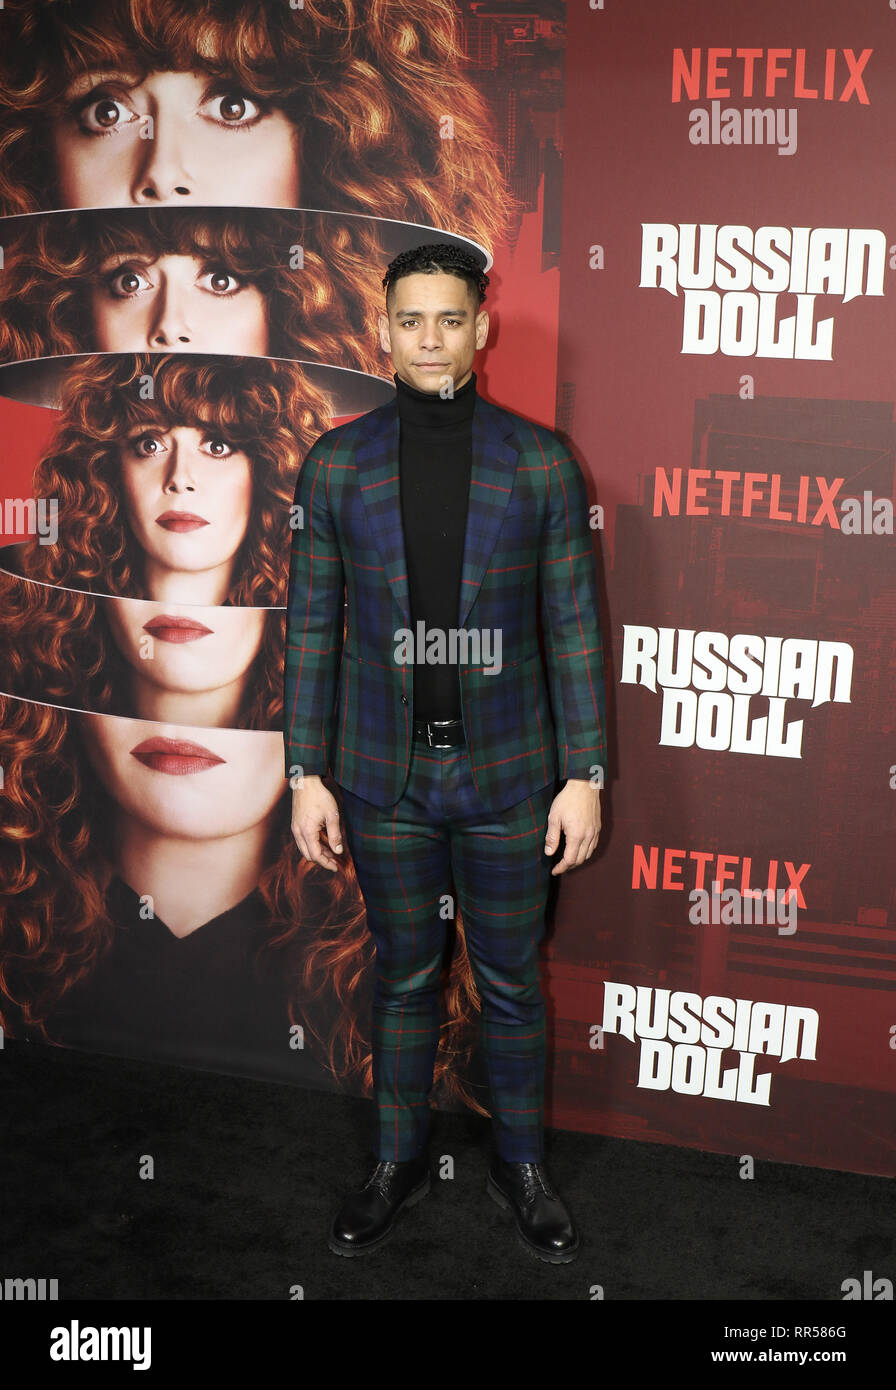 Cast Members From Netflixs Russian Doll On The Red Carpet